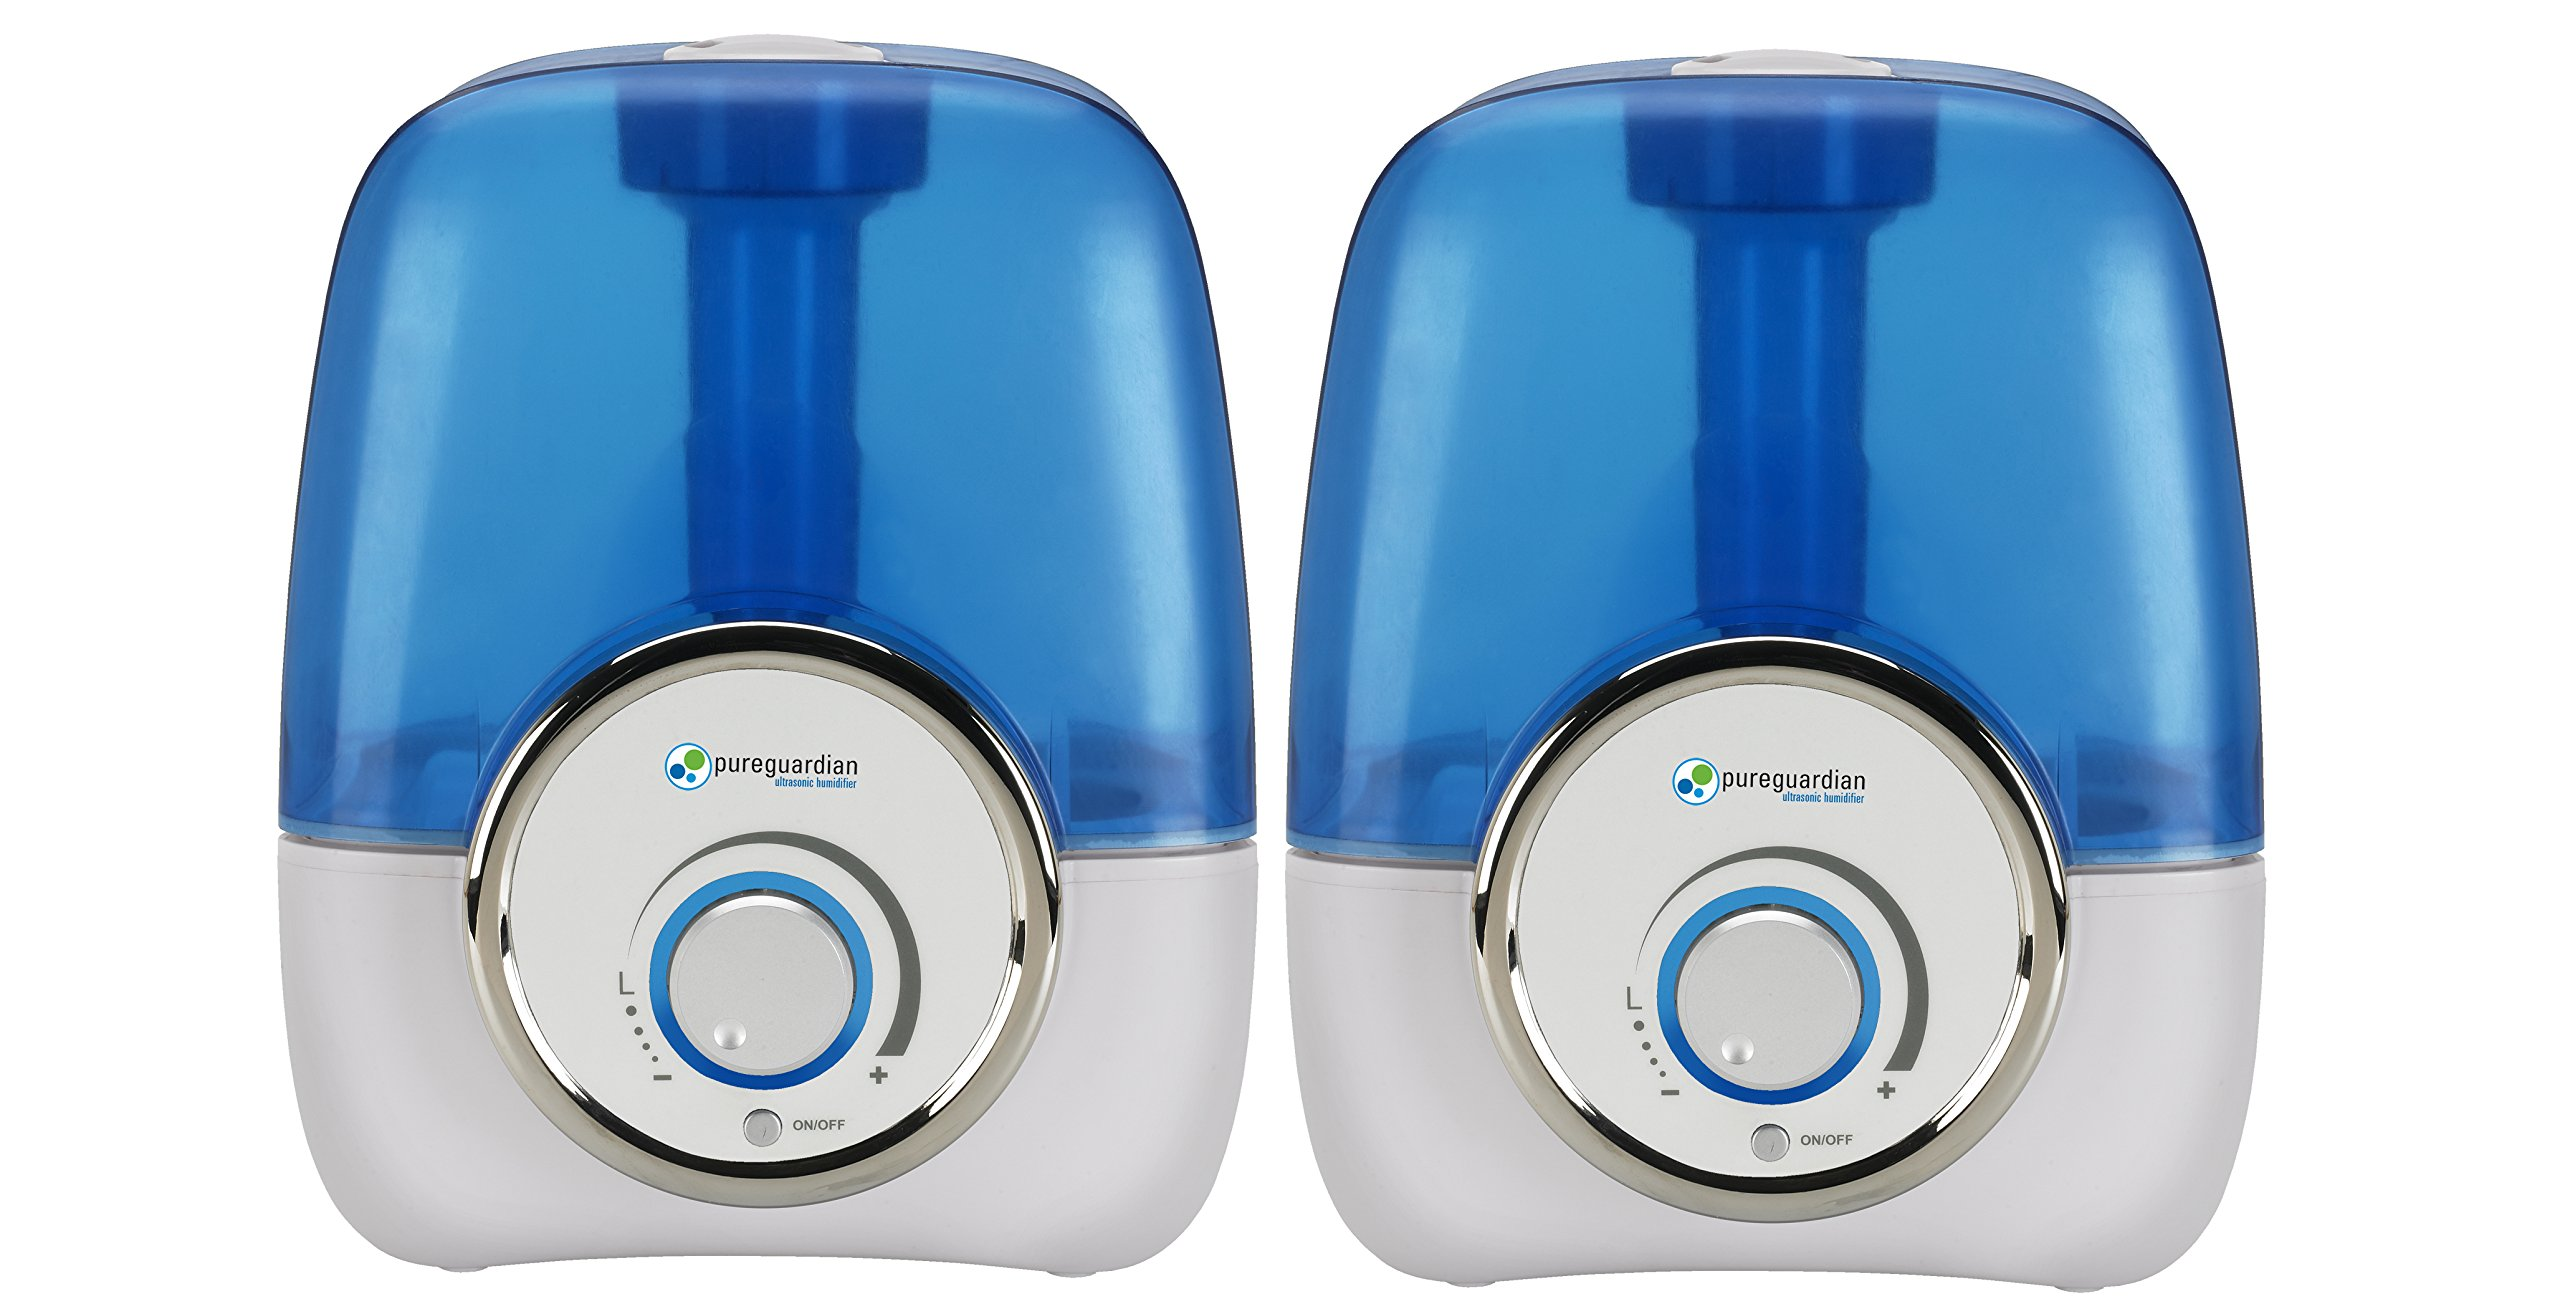 PureGuardian H12102PK Ultrasonic Cool Mist Humidifier 2 Pack, Single Room, Desk, Office, Bedroom, Baby, Portable, Easy Quiet Operation, Night Light, Auto Shut-Off, Pure Guardian Humidifiers